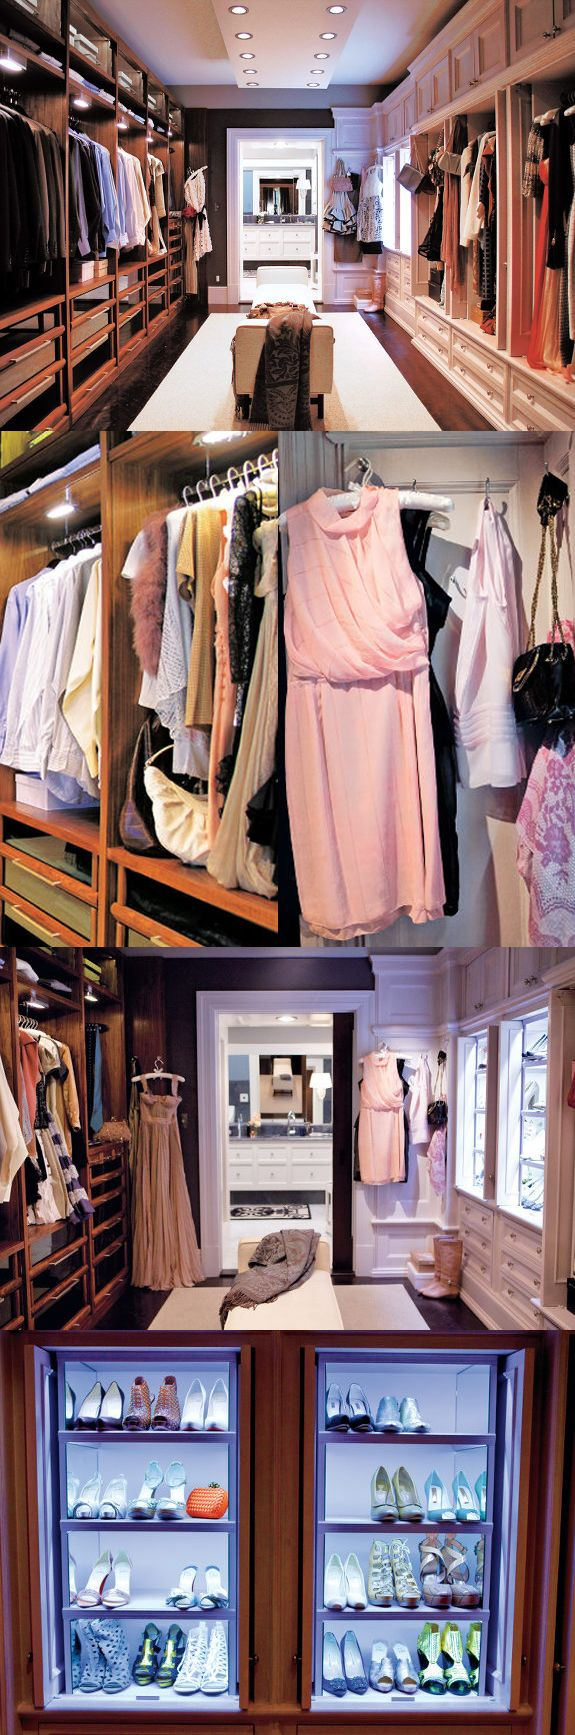 take a closer look to carrie bradshaw's closet.fantabulous!